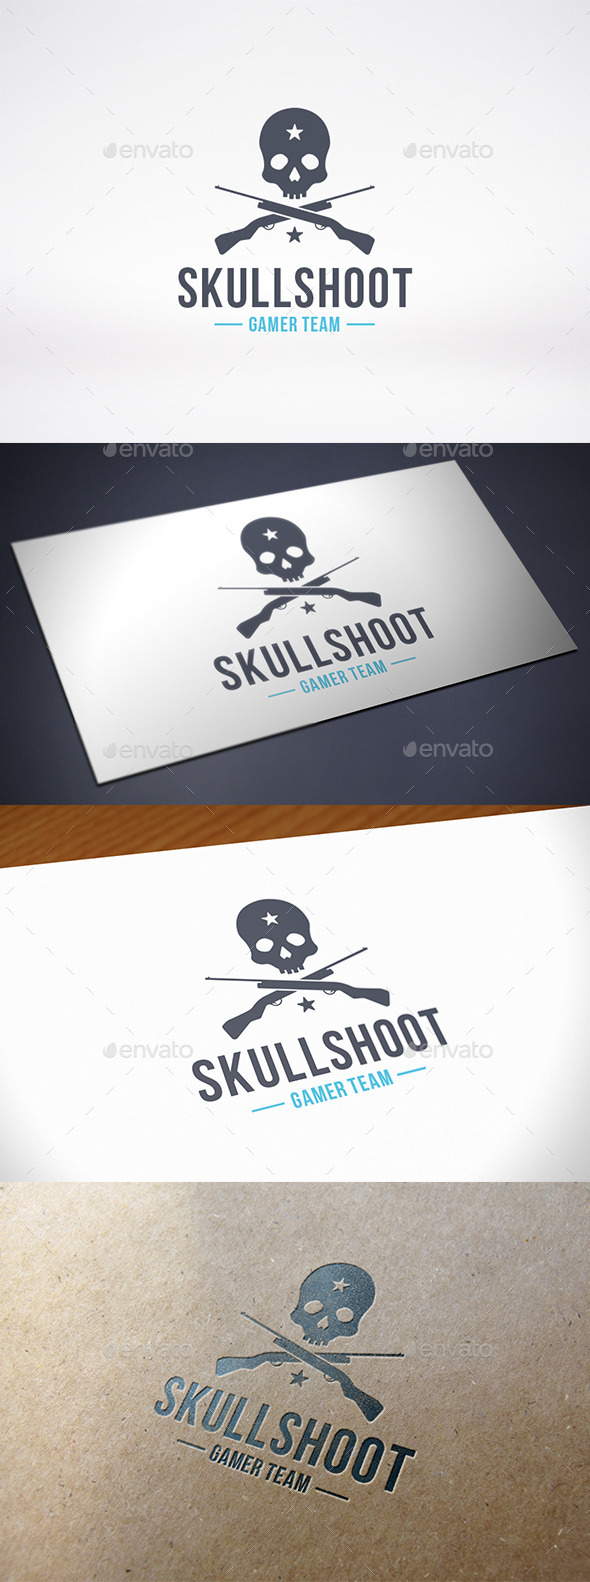 GraphicRiver Shooter Game Team Logo Template 10379756